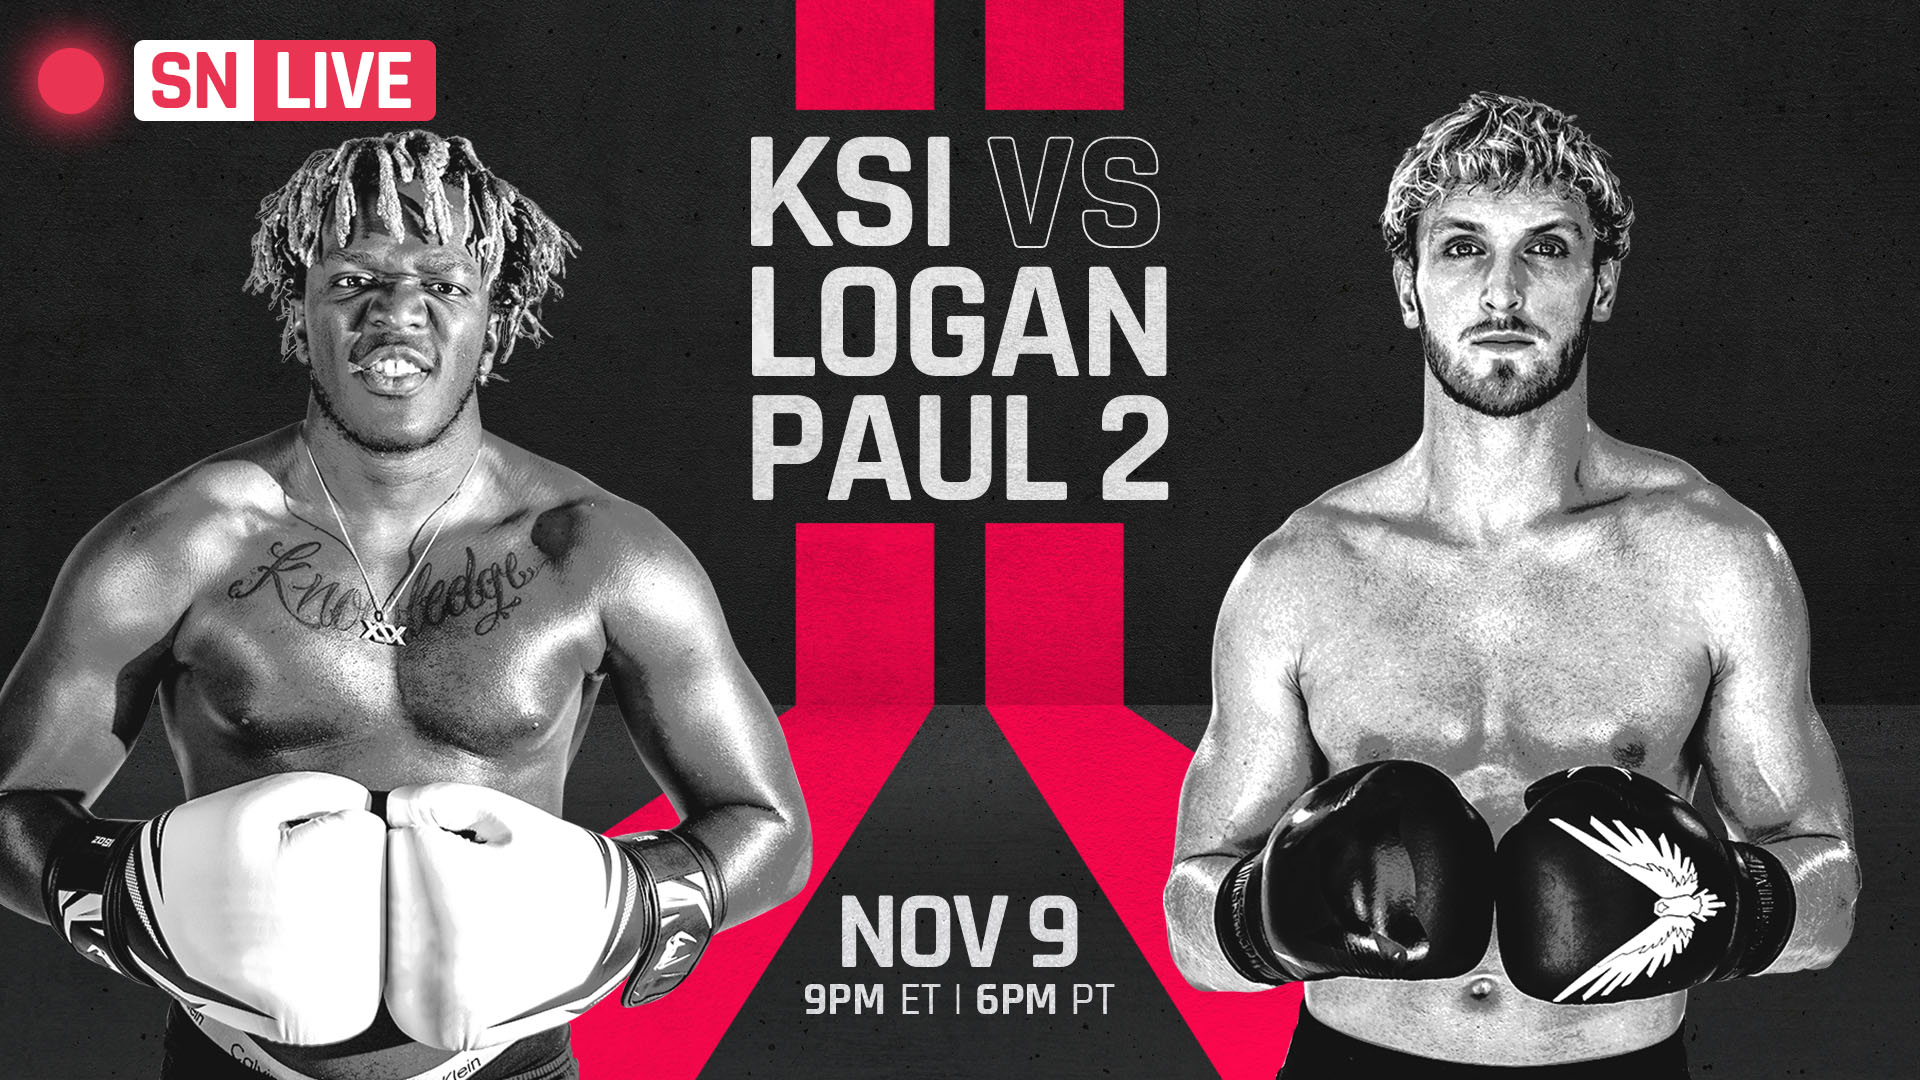 Logan Paul Vs Ksi 2 Live Updates Round By Round Results Highlights From The Youtubers